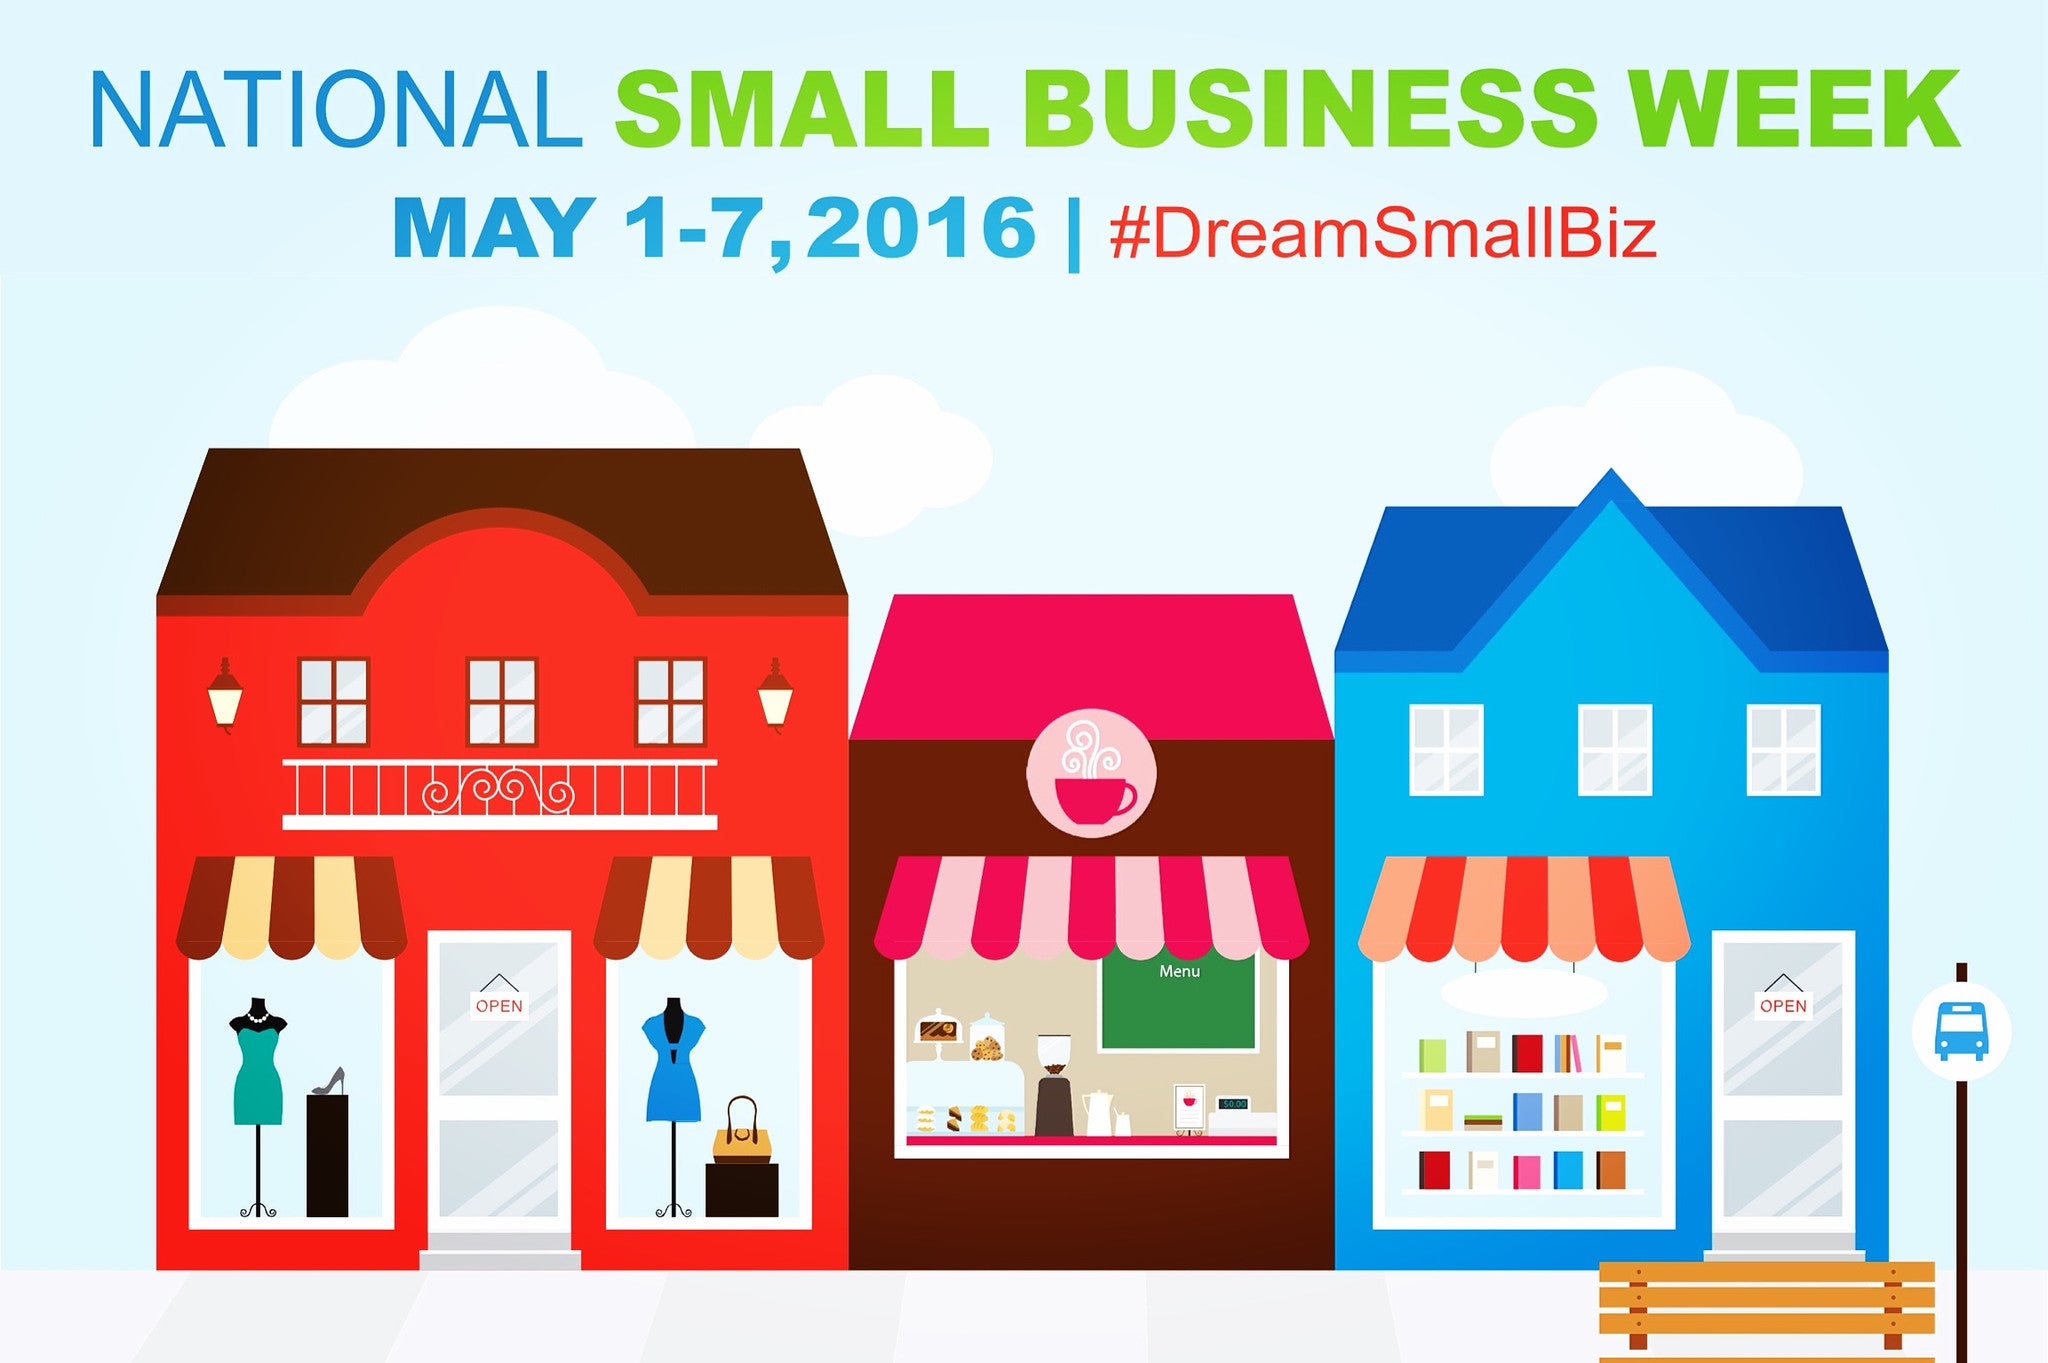 RestoPresto is celebrating Small Business Week!